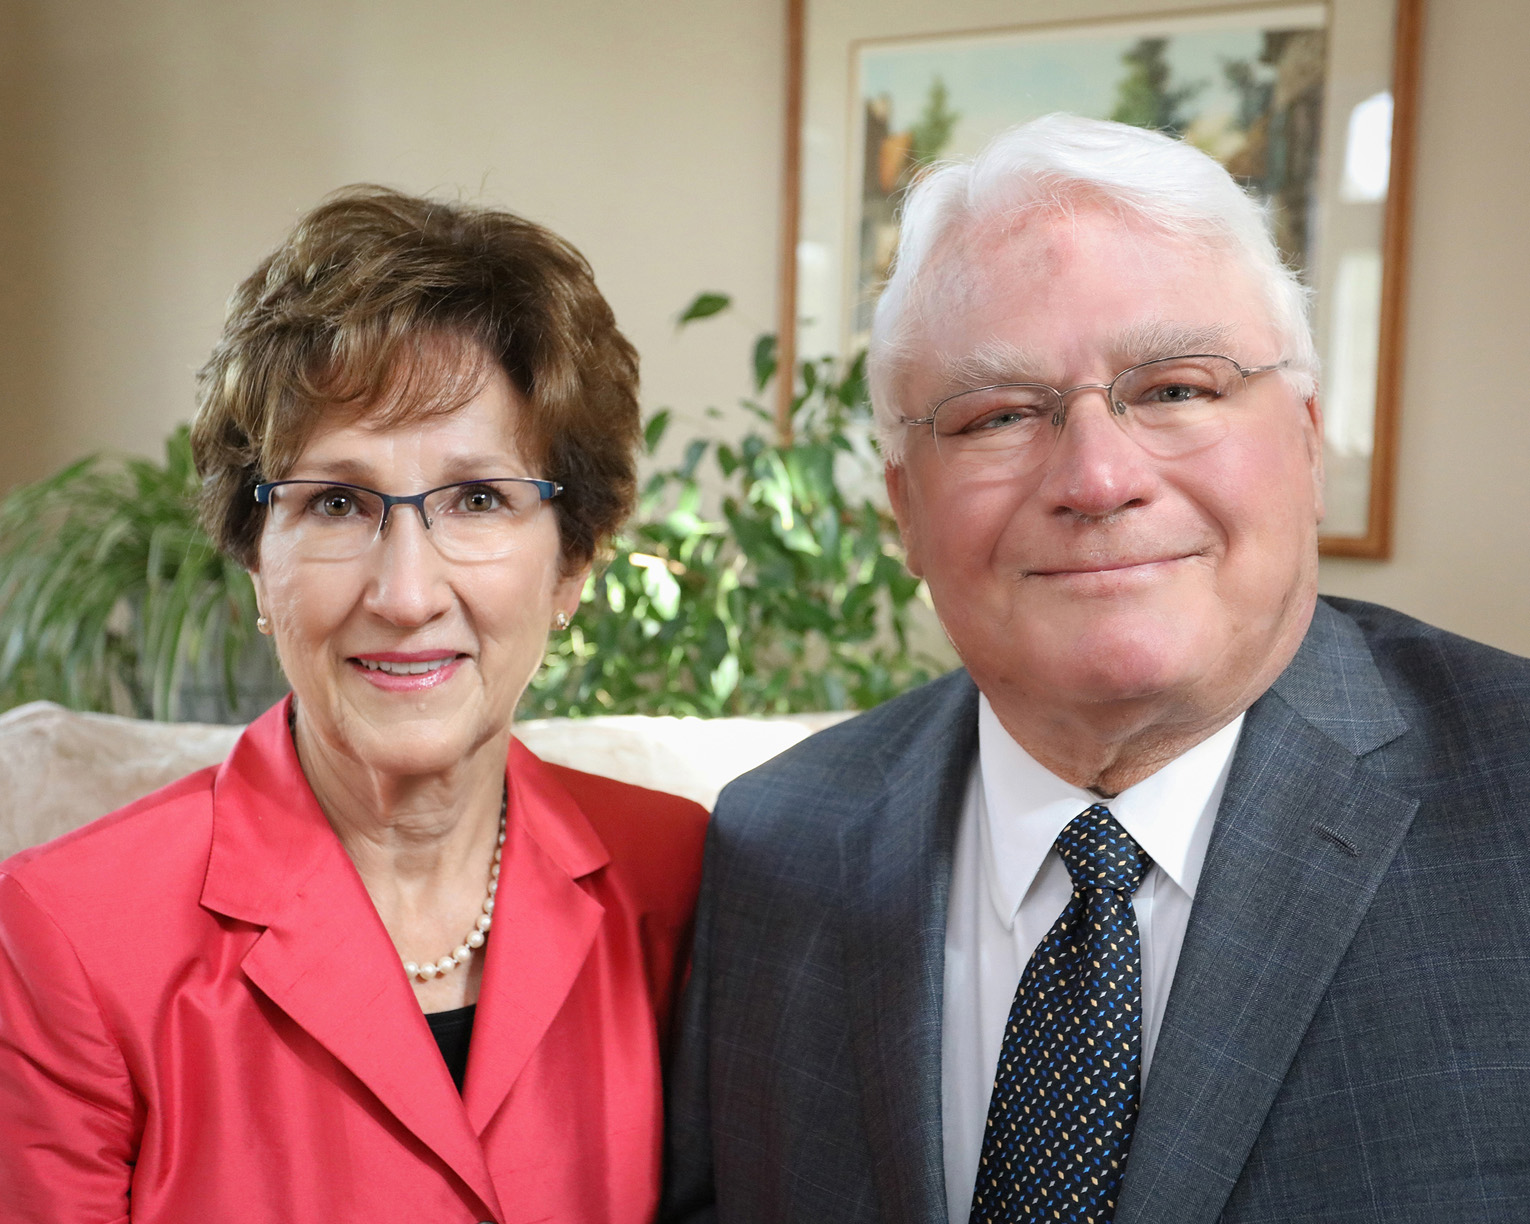 Marilyn and Galen Hadley of Kearney are the recipients of the Cope Cornerstone of Excellence Award. They will be recognized at Friday's commencement at UN